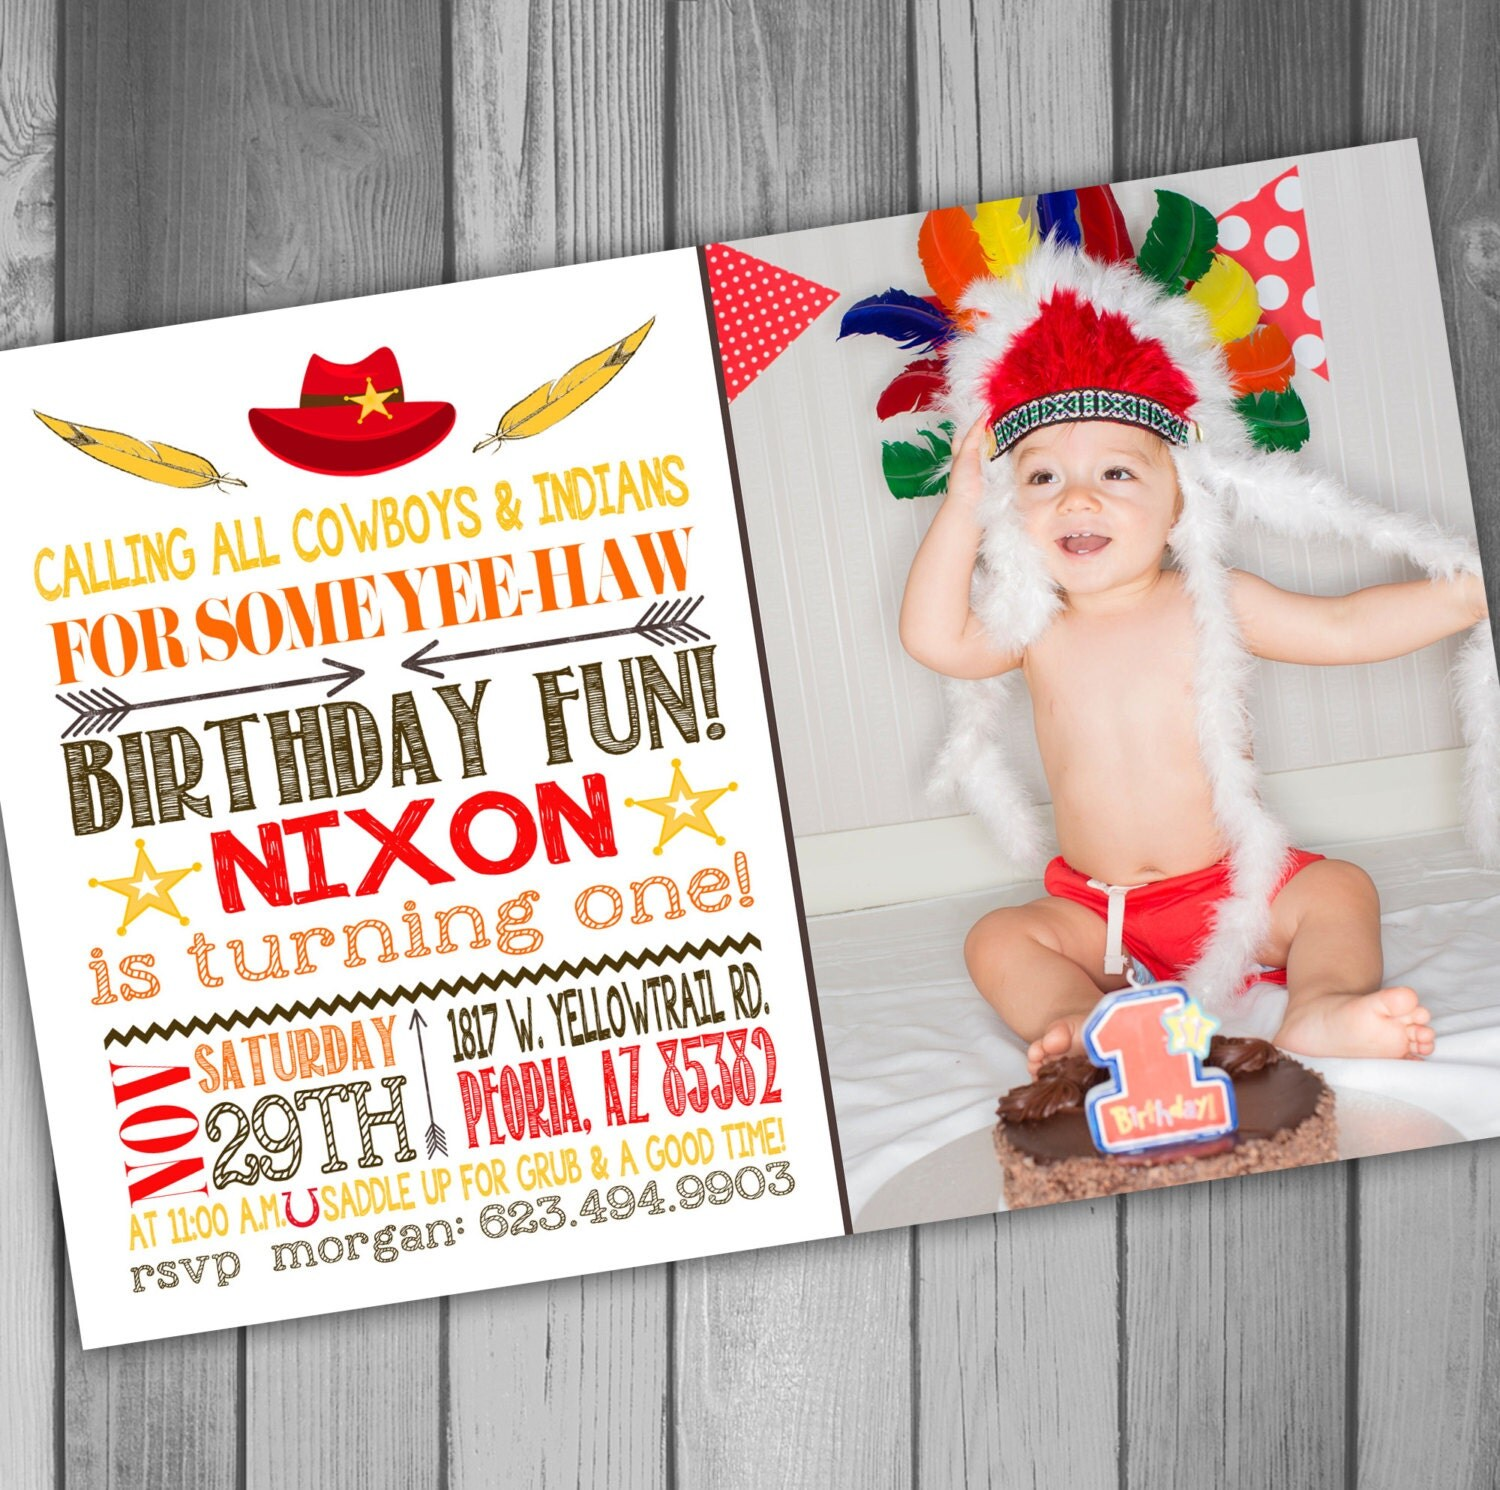 Cowboys and indians – Cowboy and Indian Party Invitations